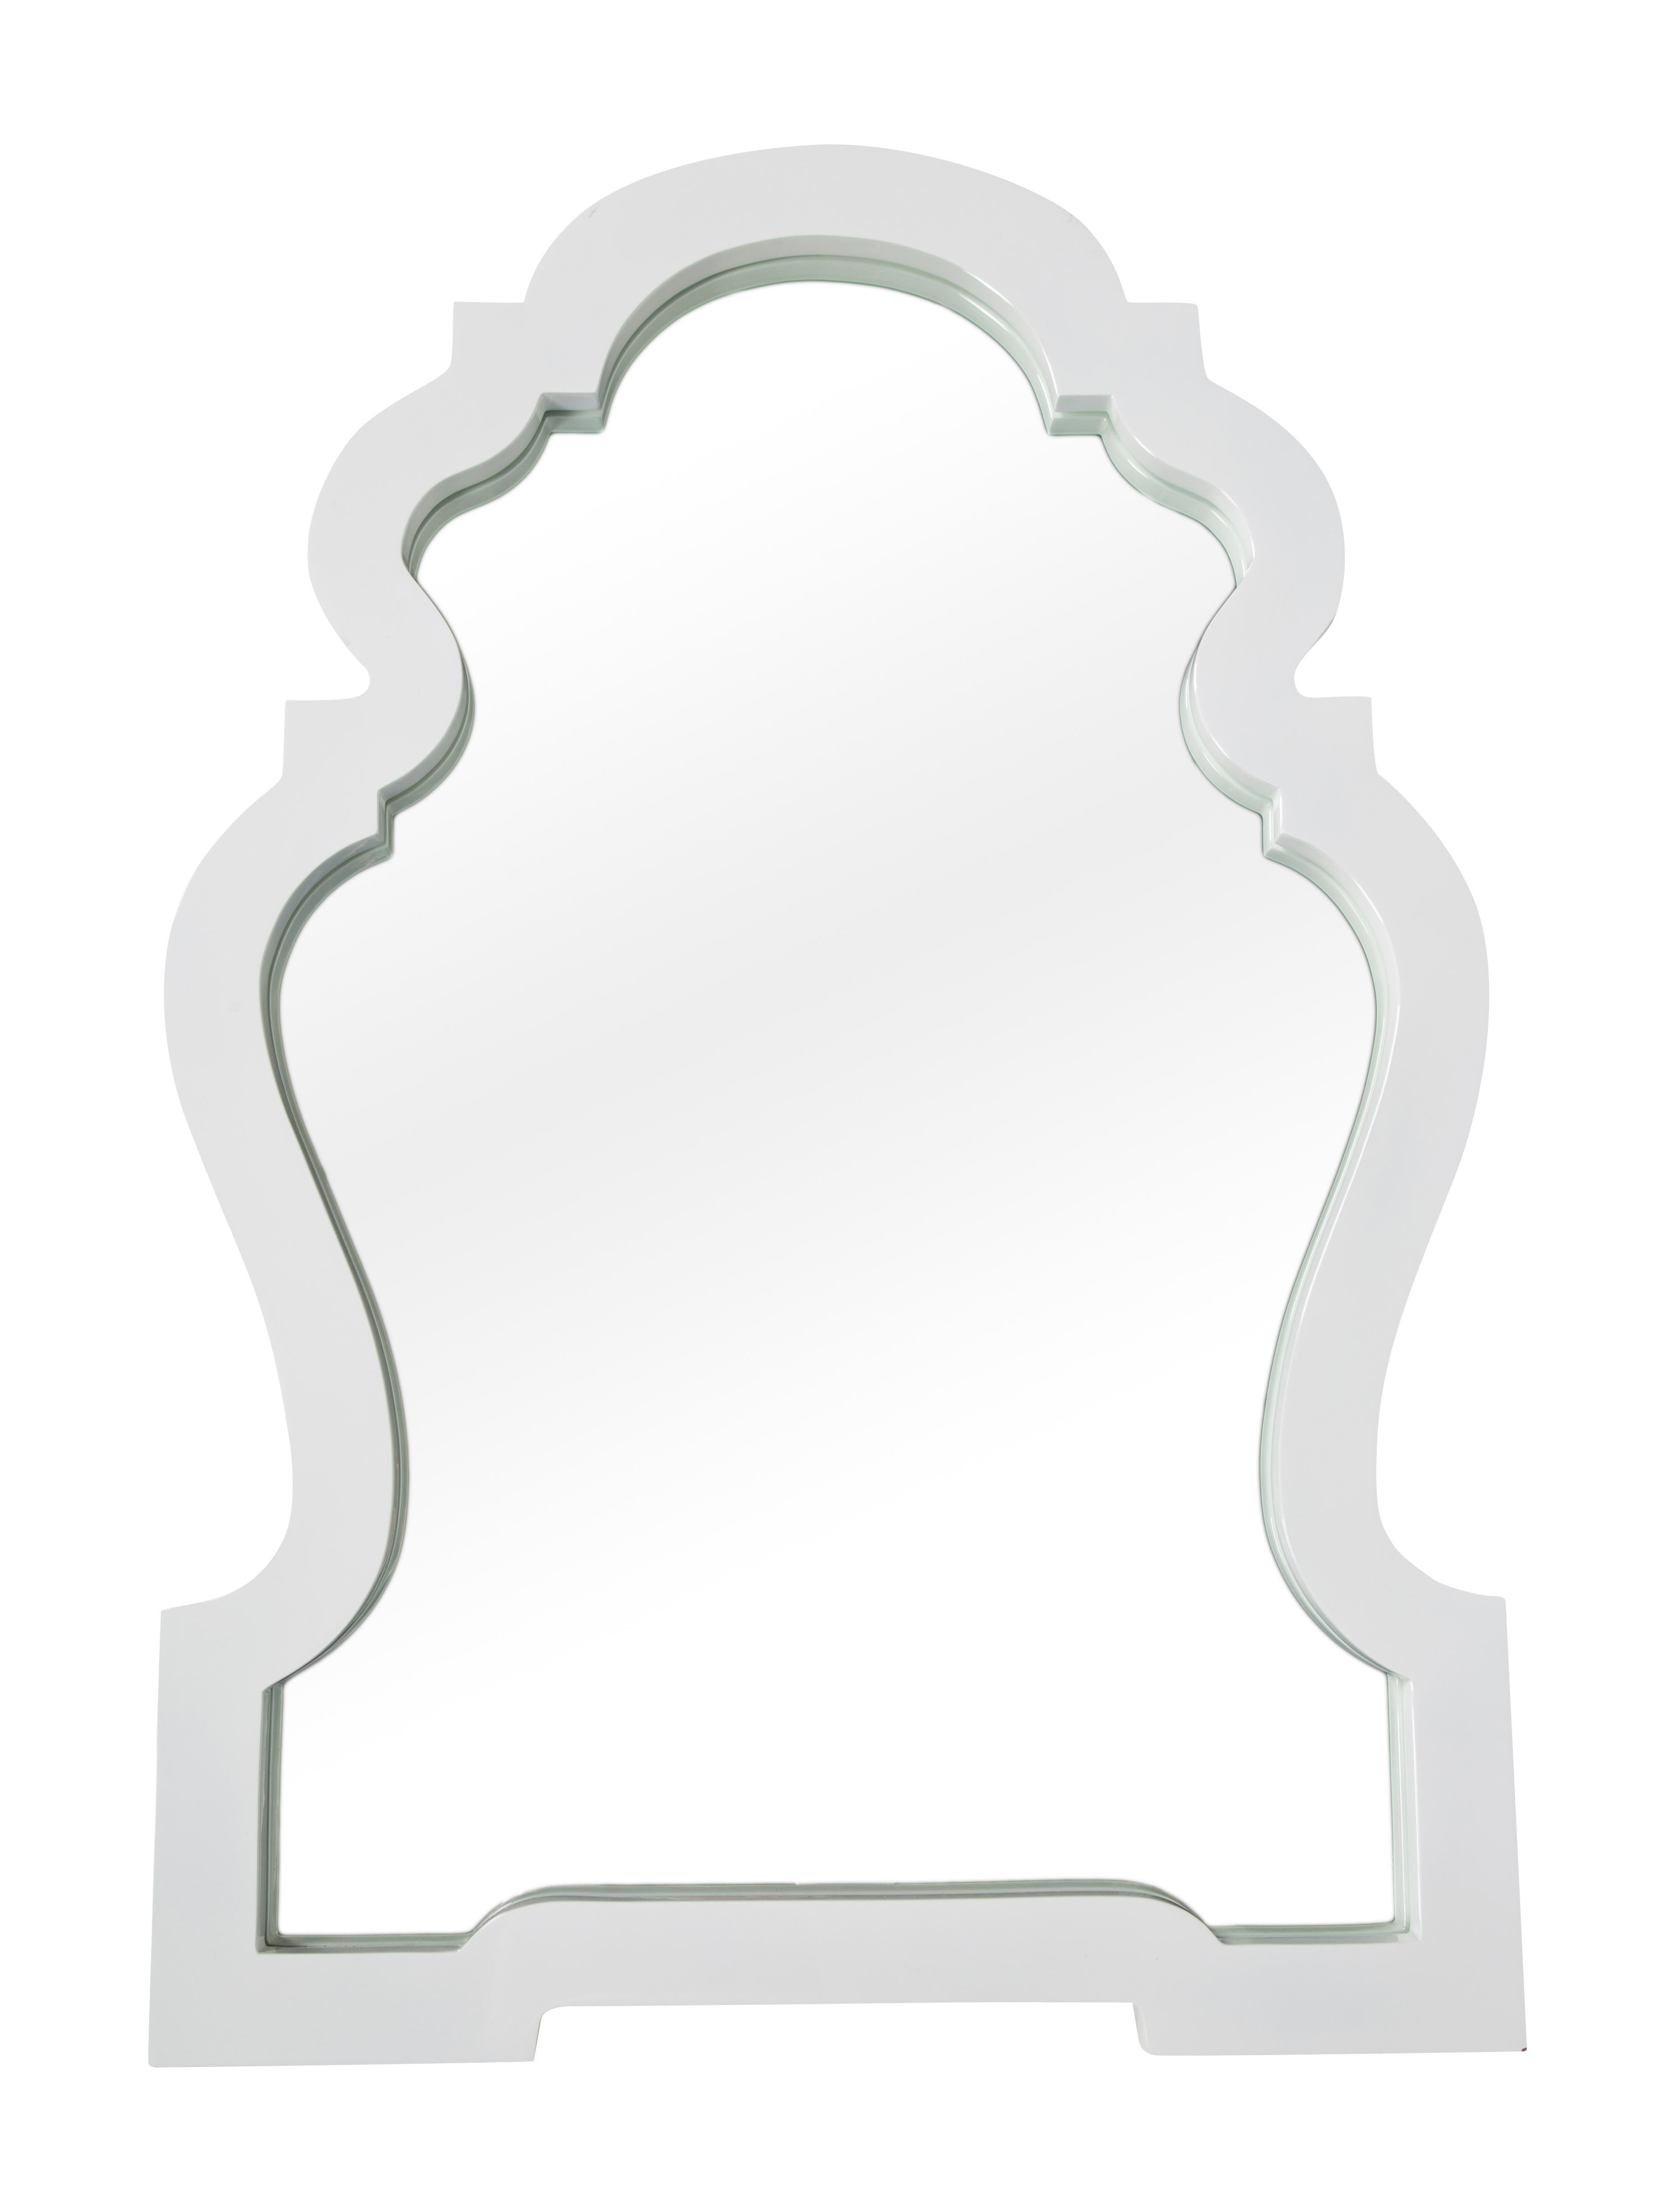 Jonathan Adler Queen Anne Wall Mirror Decor Accessories Jtadl21312 The Realreal